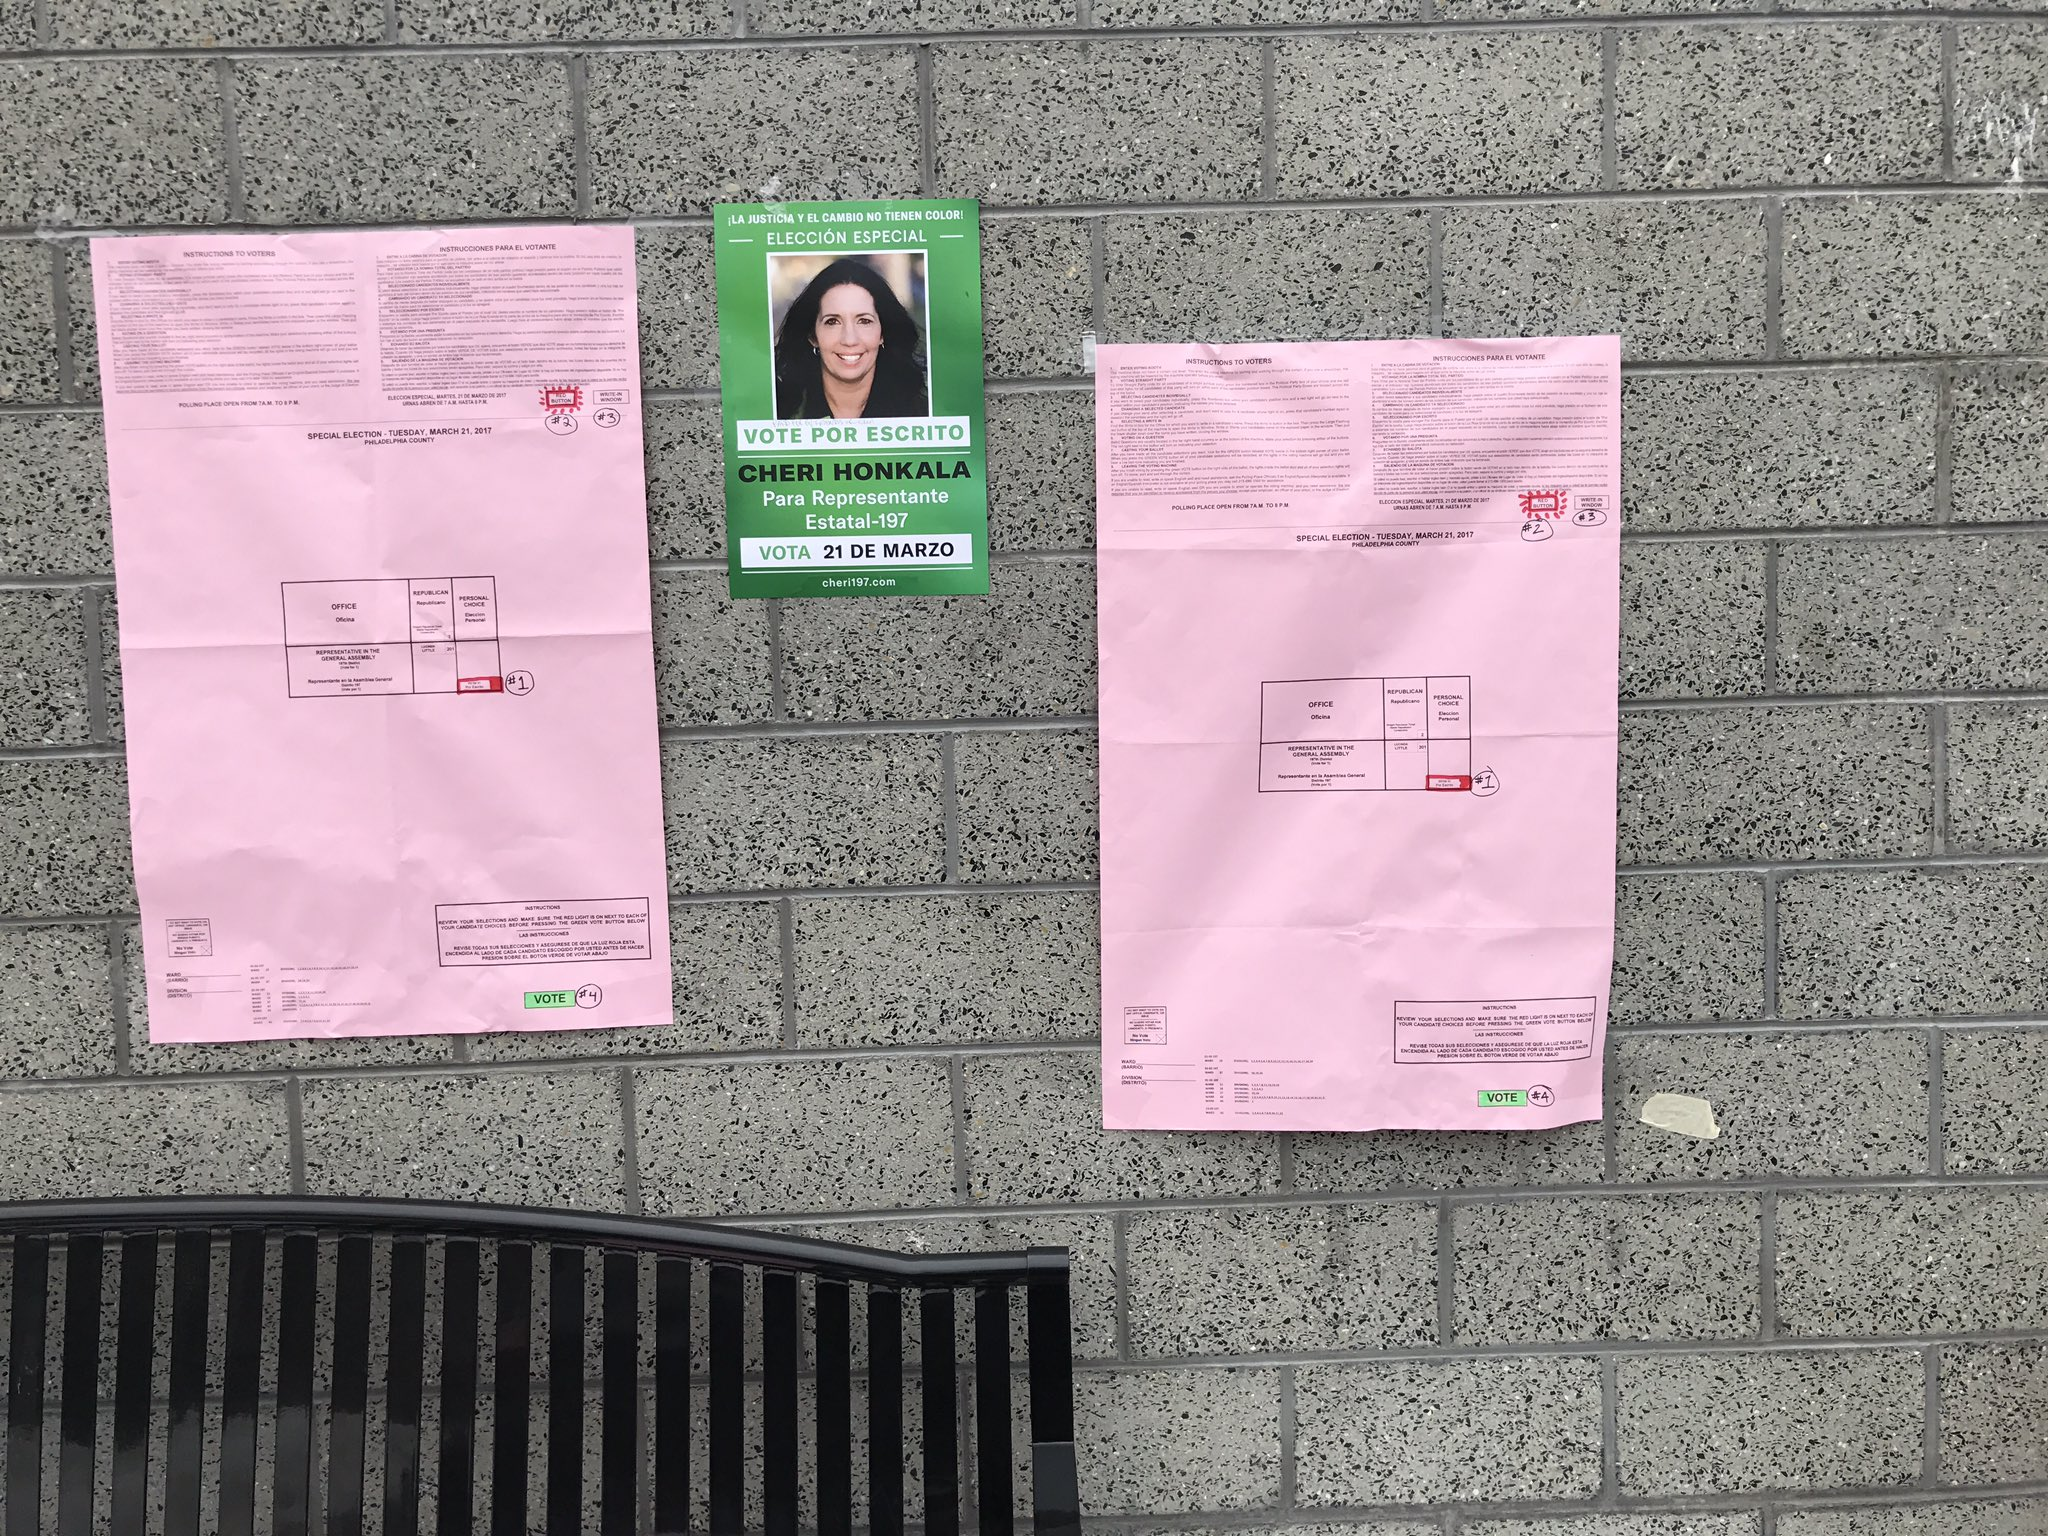 Repubs hearing that Honkala's signs will be taken down because they don't say who paid for them. Dems reported it #197th @TheSpiritNews https://t.co/fpA9r4fNrH